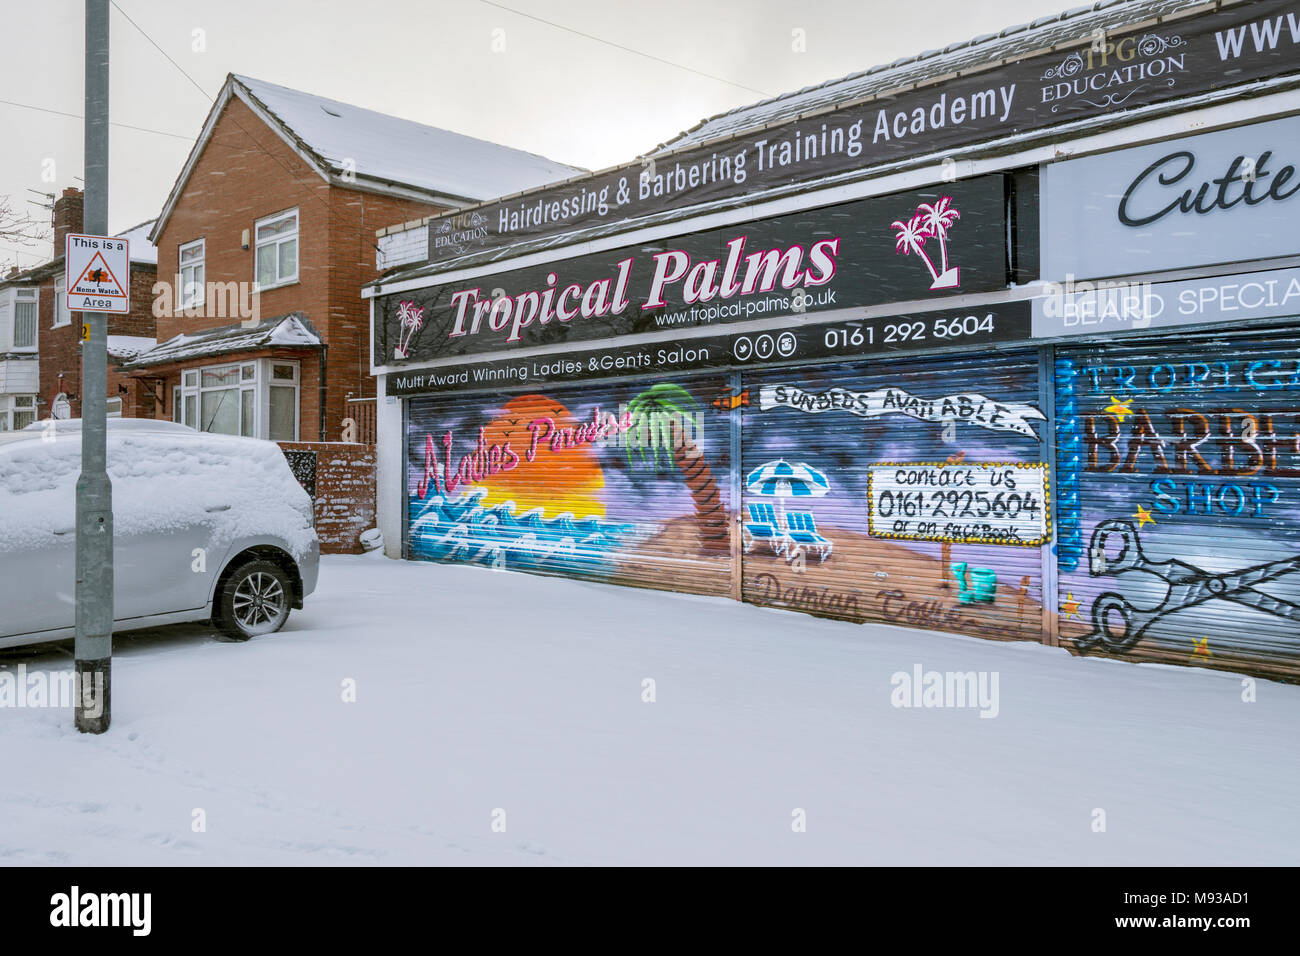 Tropical Palms tanning salon contrasting with with snow outside, Droylsden, Tameside, Manchester, England, UK - Stock Image